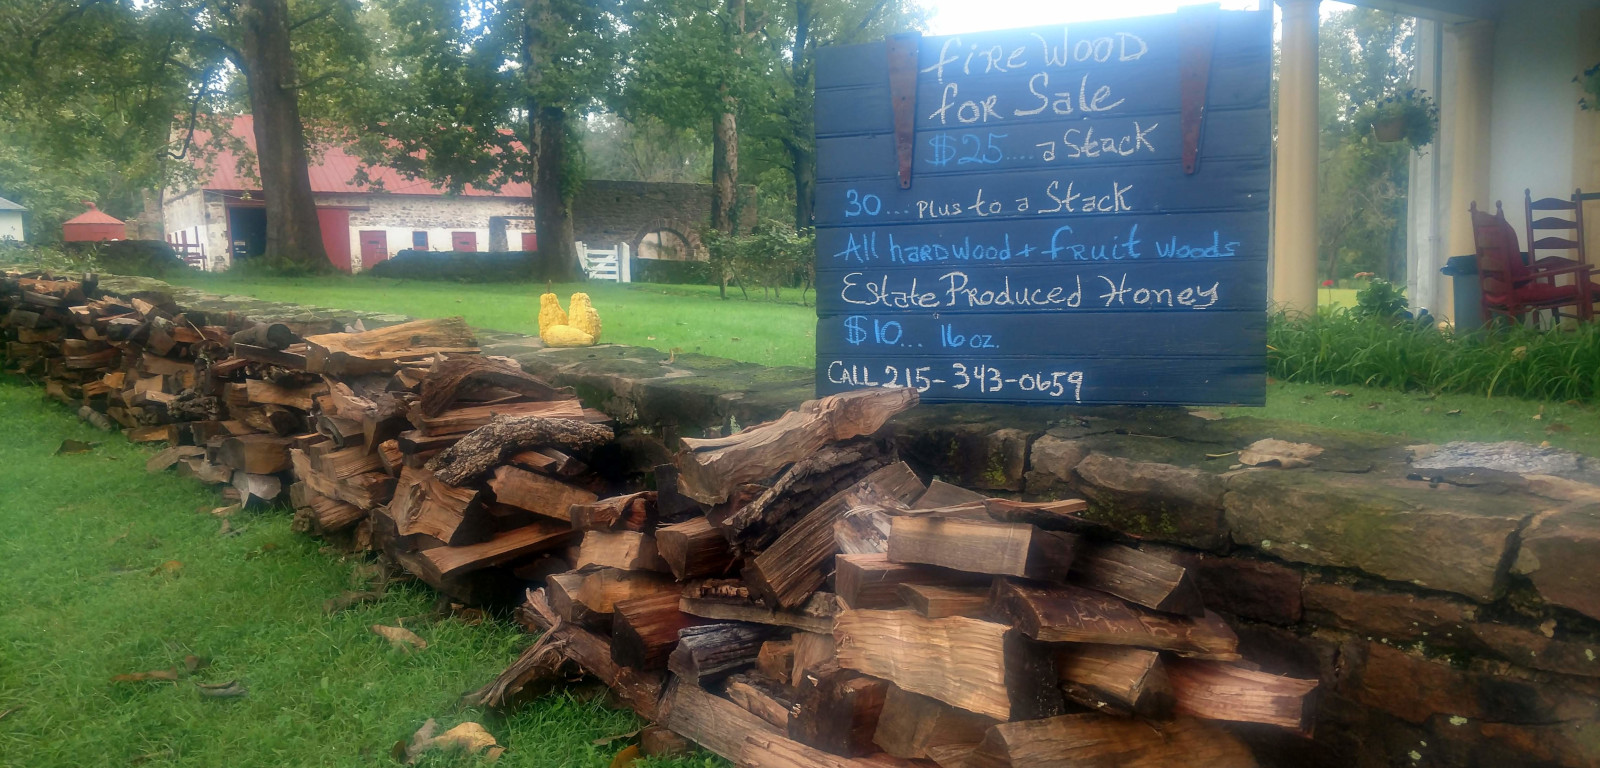 sign selling firewood with stacks of wood against stone wall with barn in distant background